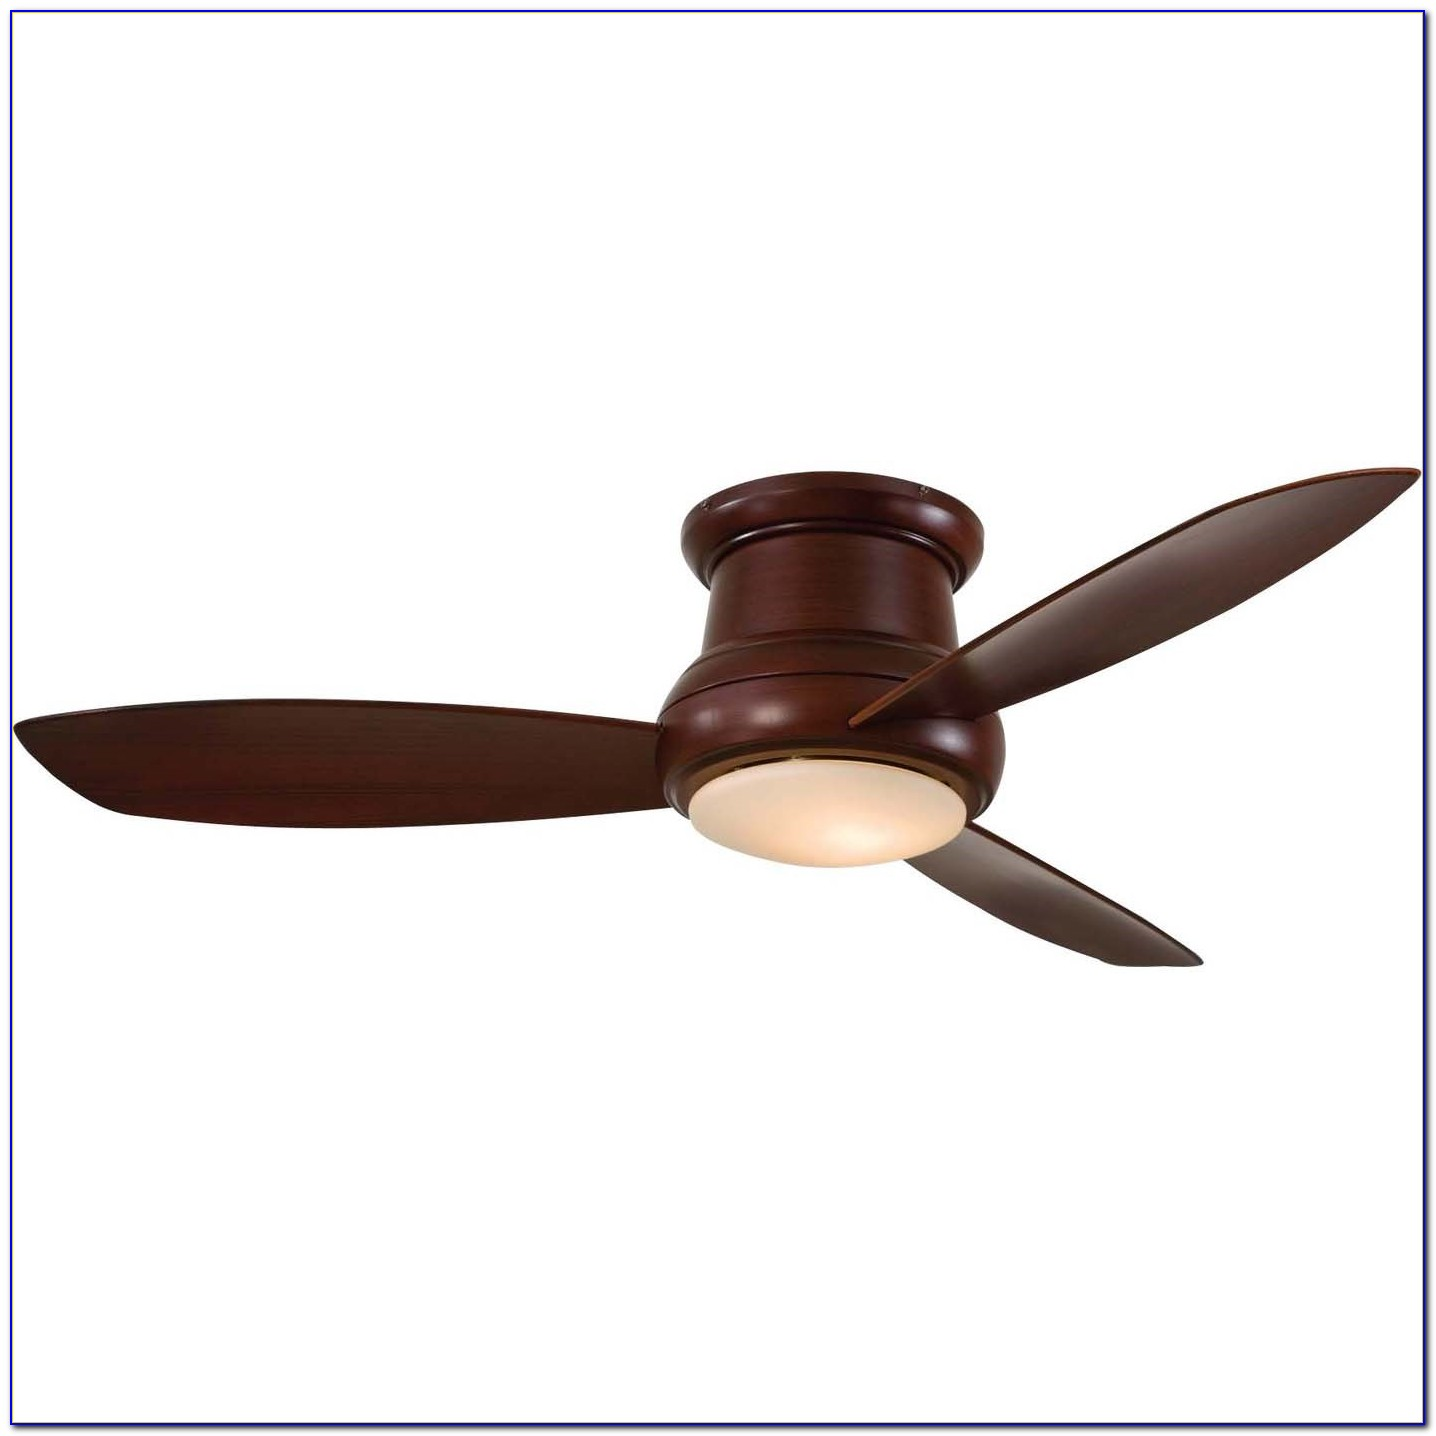 Minka Concept 2 Ceiling Fan